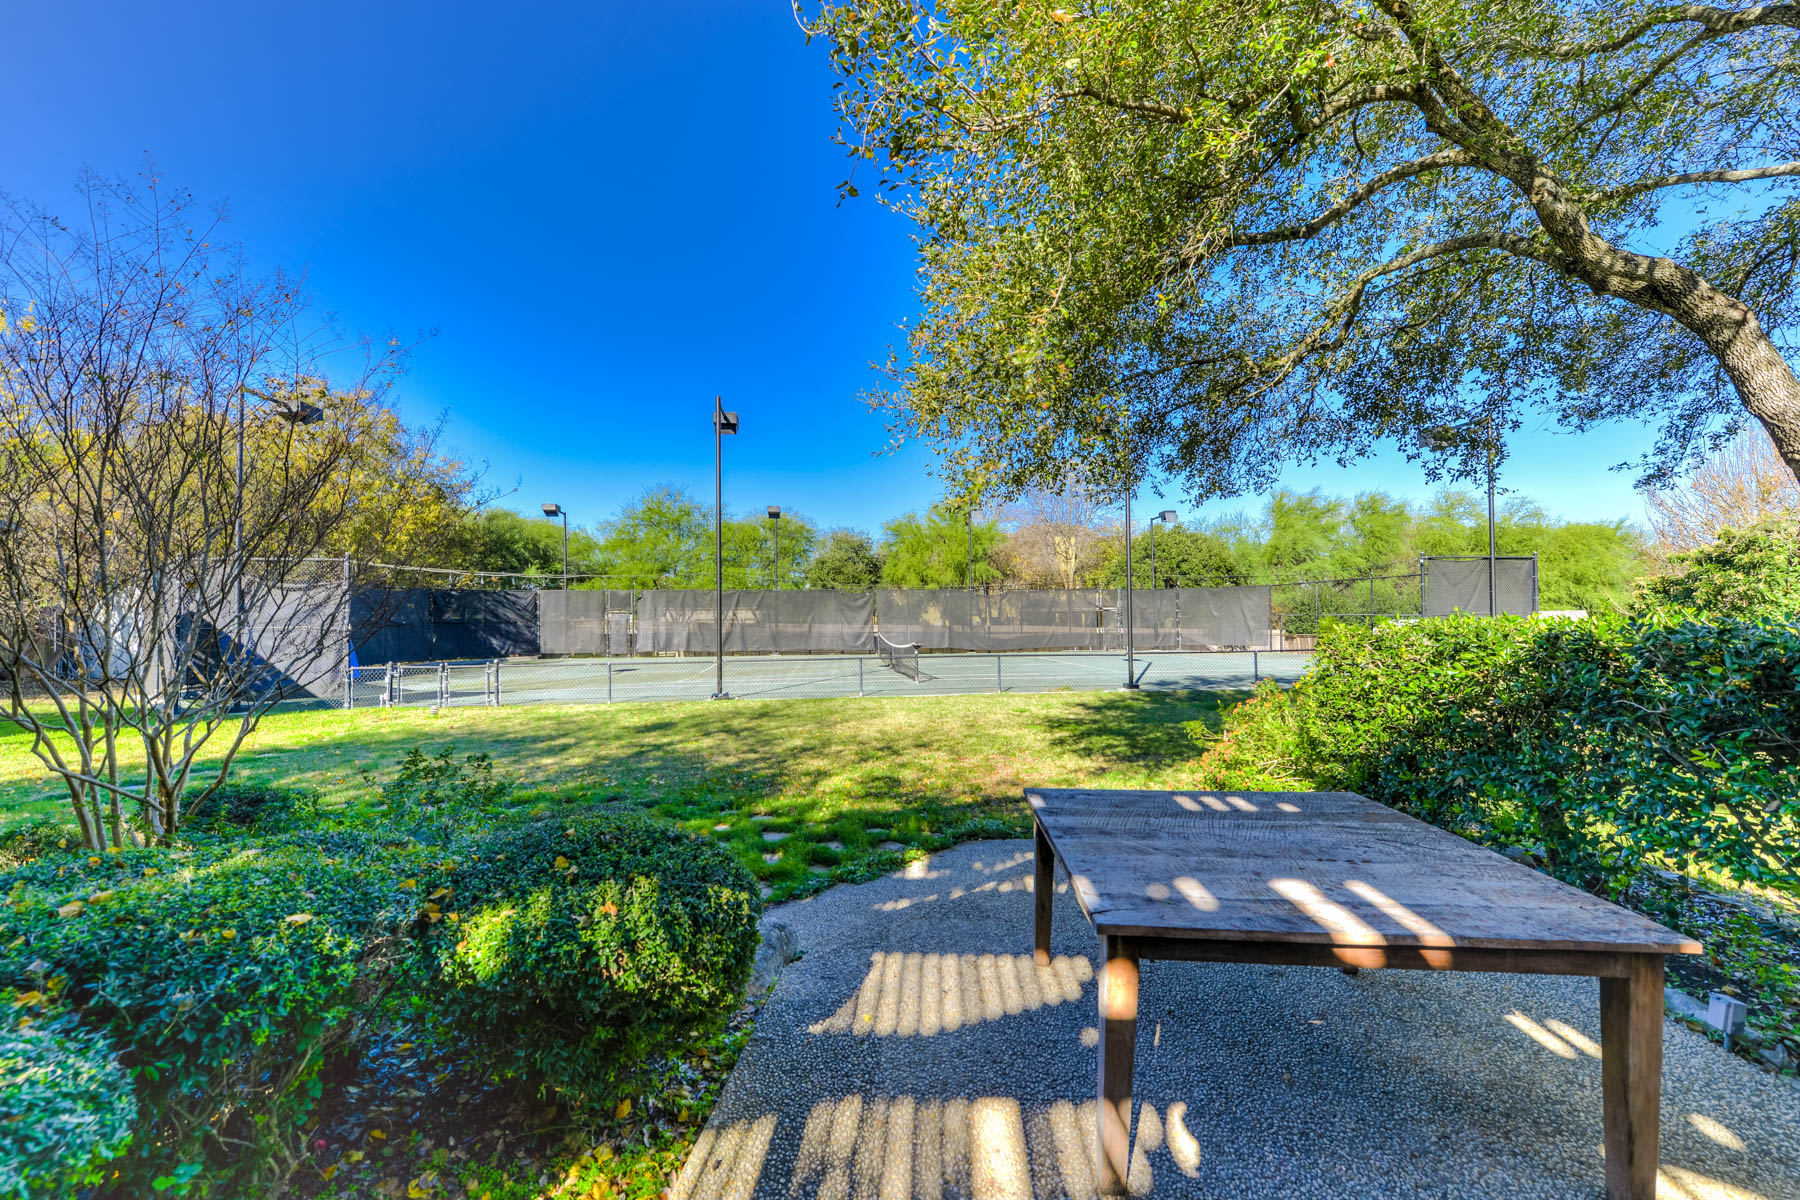 Additional photo for property listing at Gorgeous Home in Shavano Park With a Tennis Court 107 Post Oak Way San Antonio, Texas 78230 United States